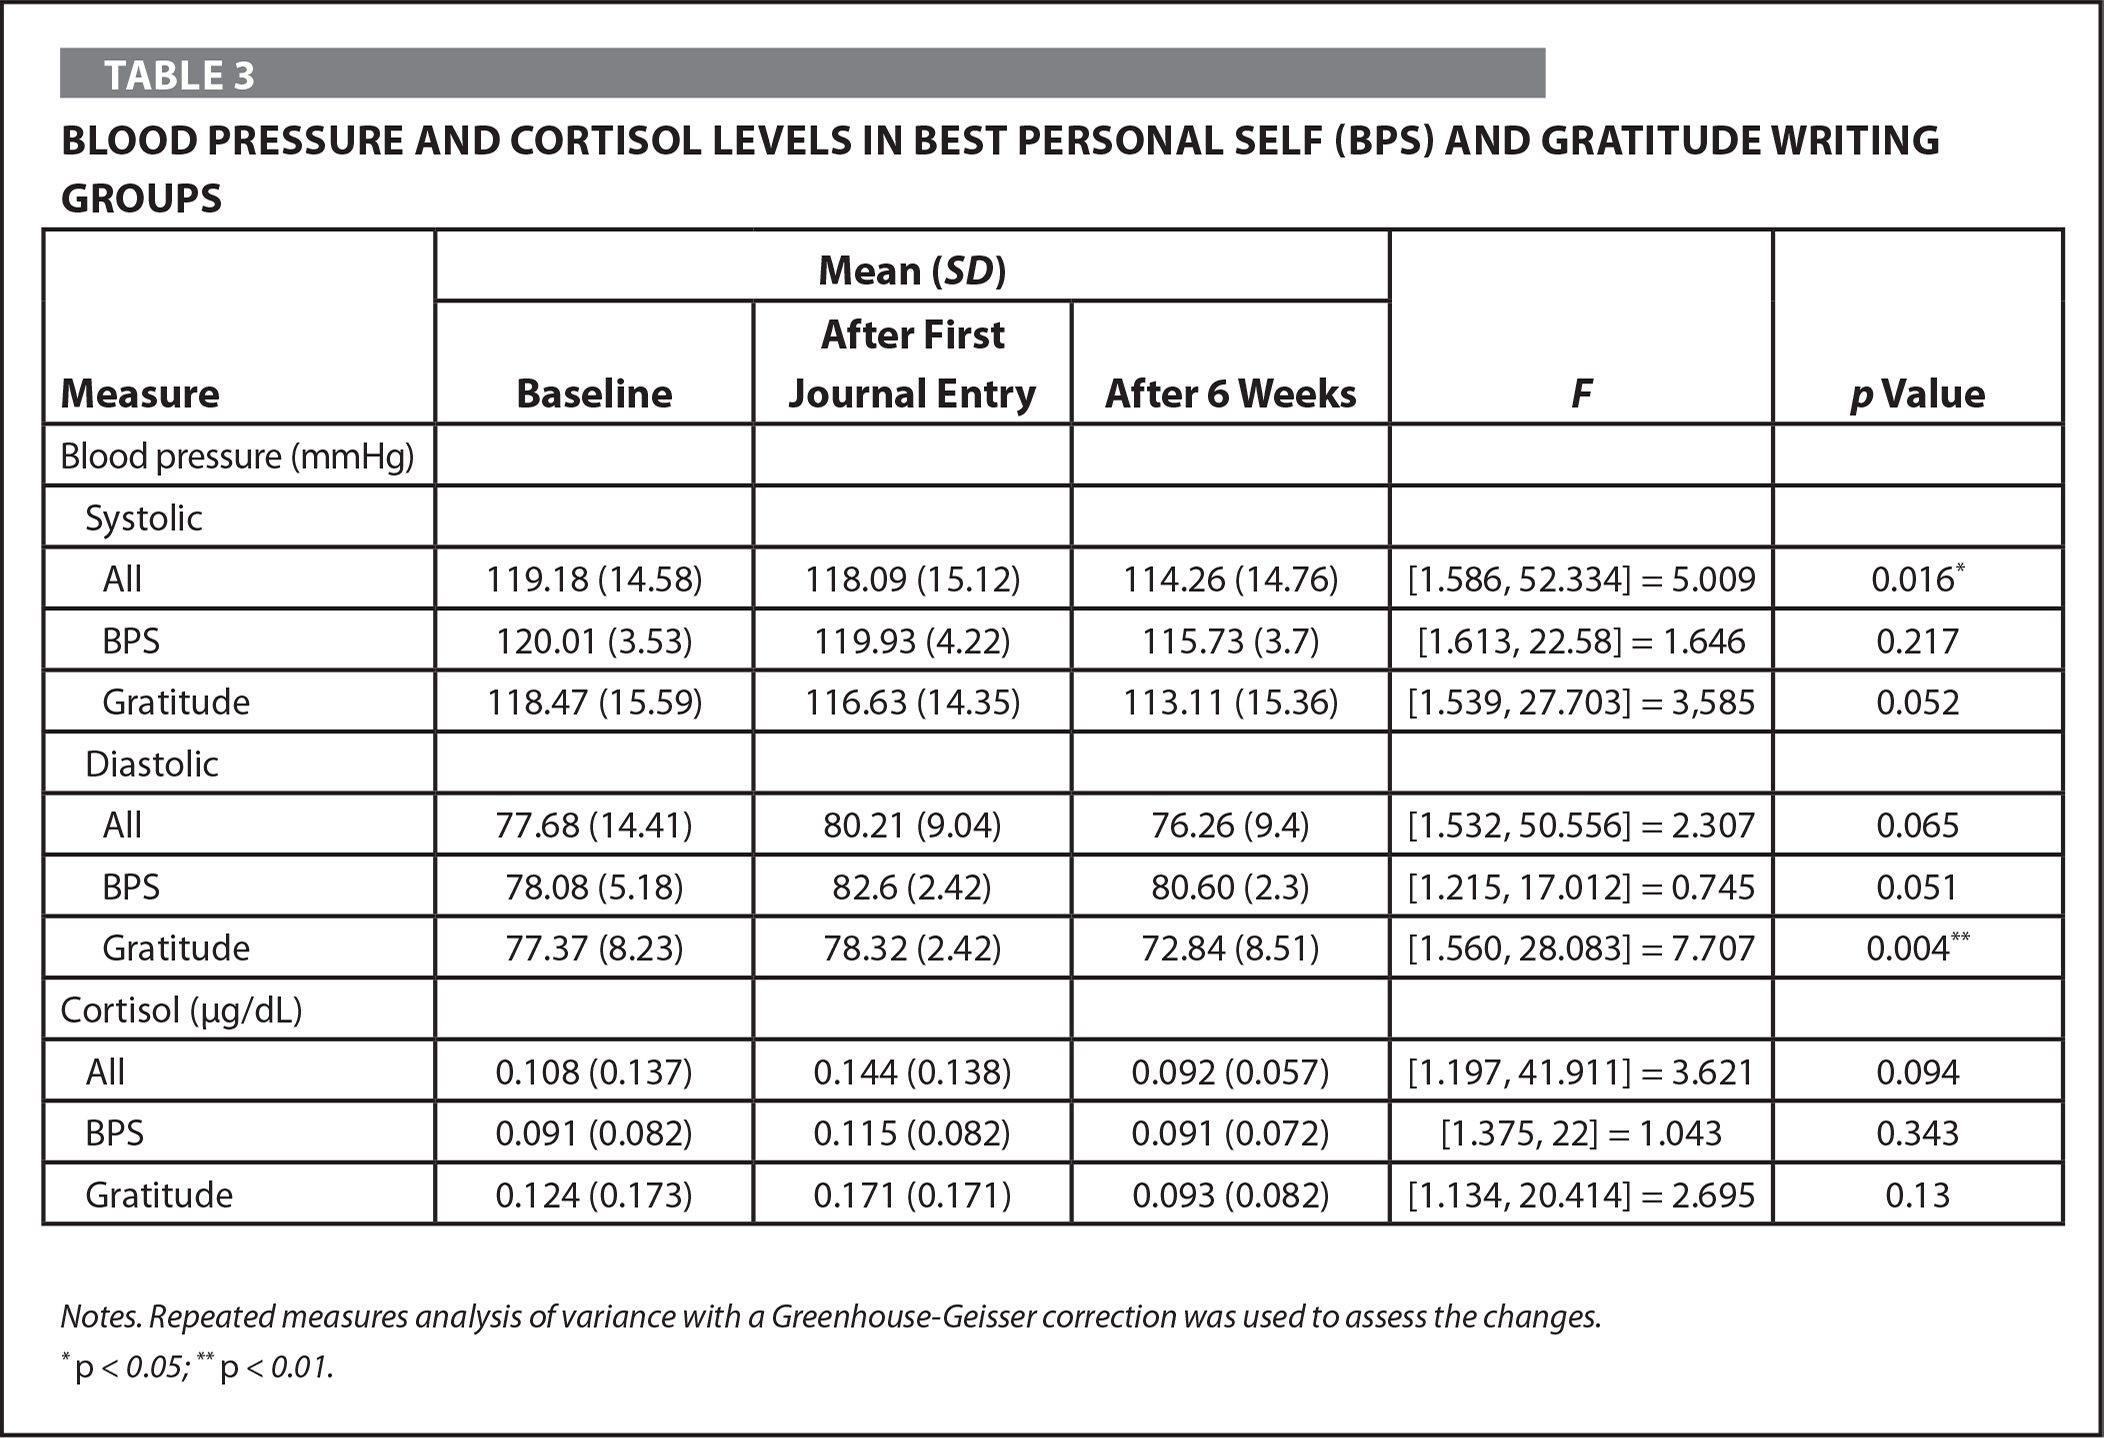 Blood Pressure and Cortisol Levels in Best Personal Self (BPS) and Gratitude Writing Groups